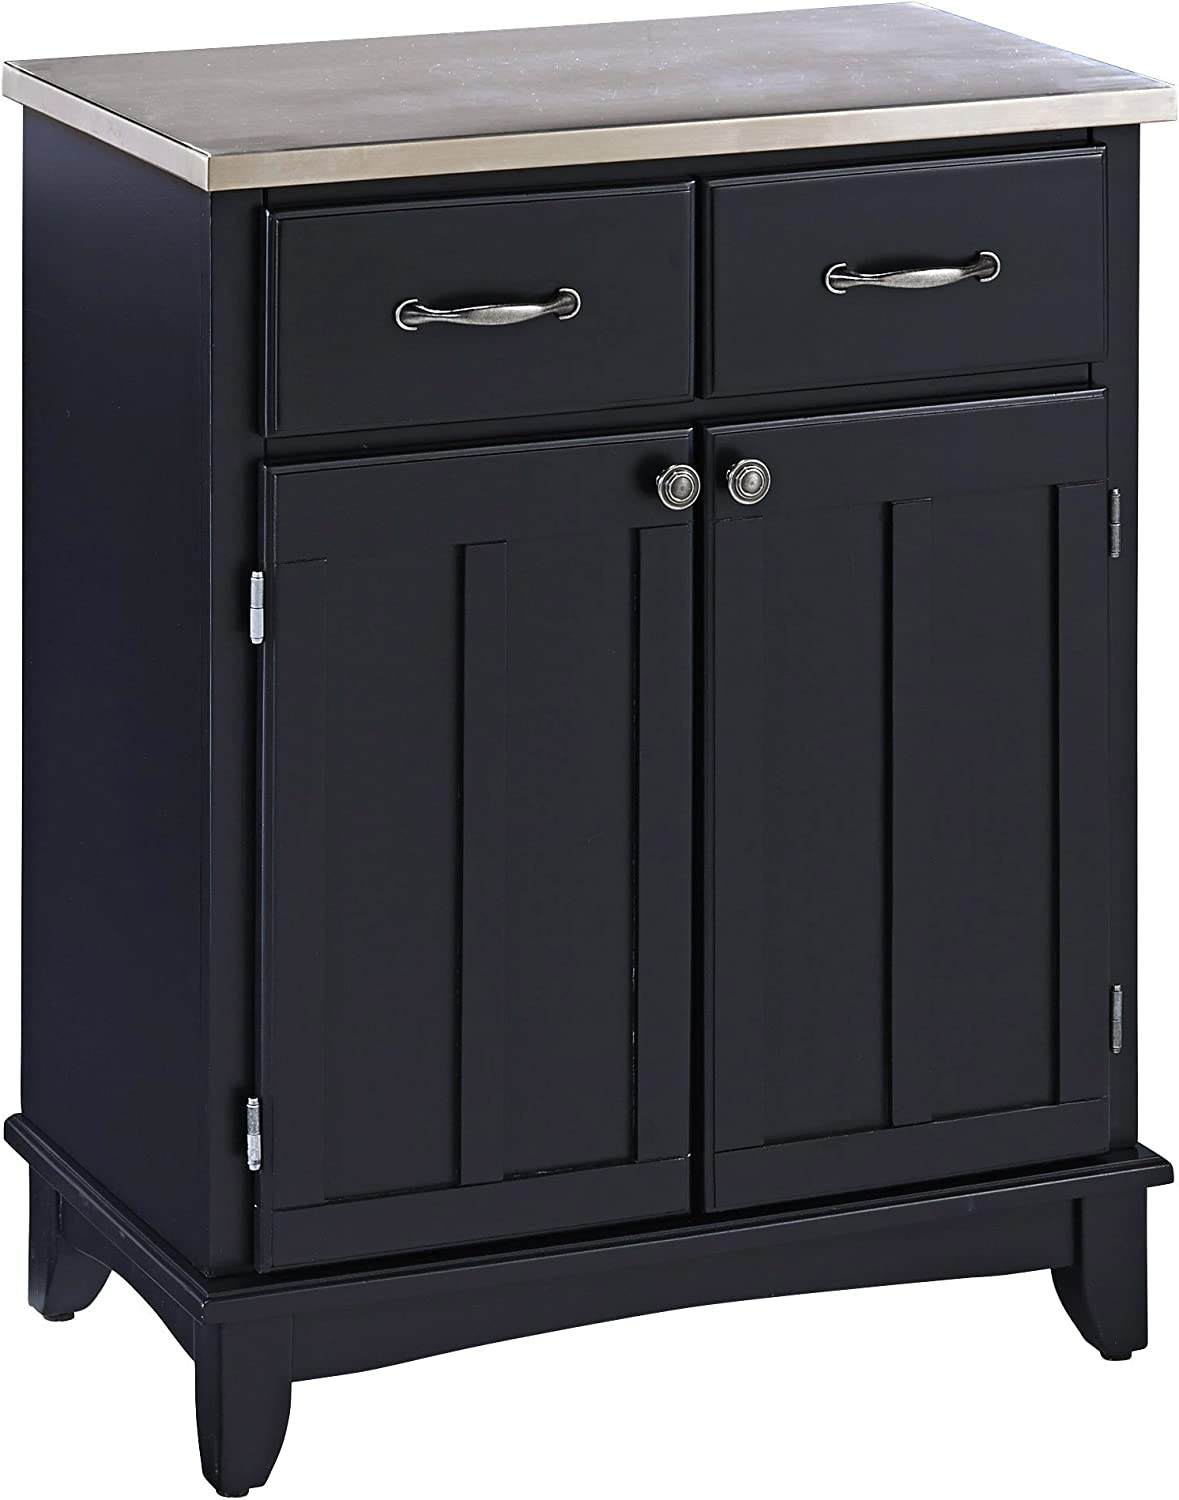 Home Styles Buffet of Buffets Black with 18-gauge Stainless Steel Top, Two Drawers, Two Wood Panel Doors, Brushed Steel Hardware, and Adjustable Shelf